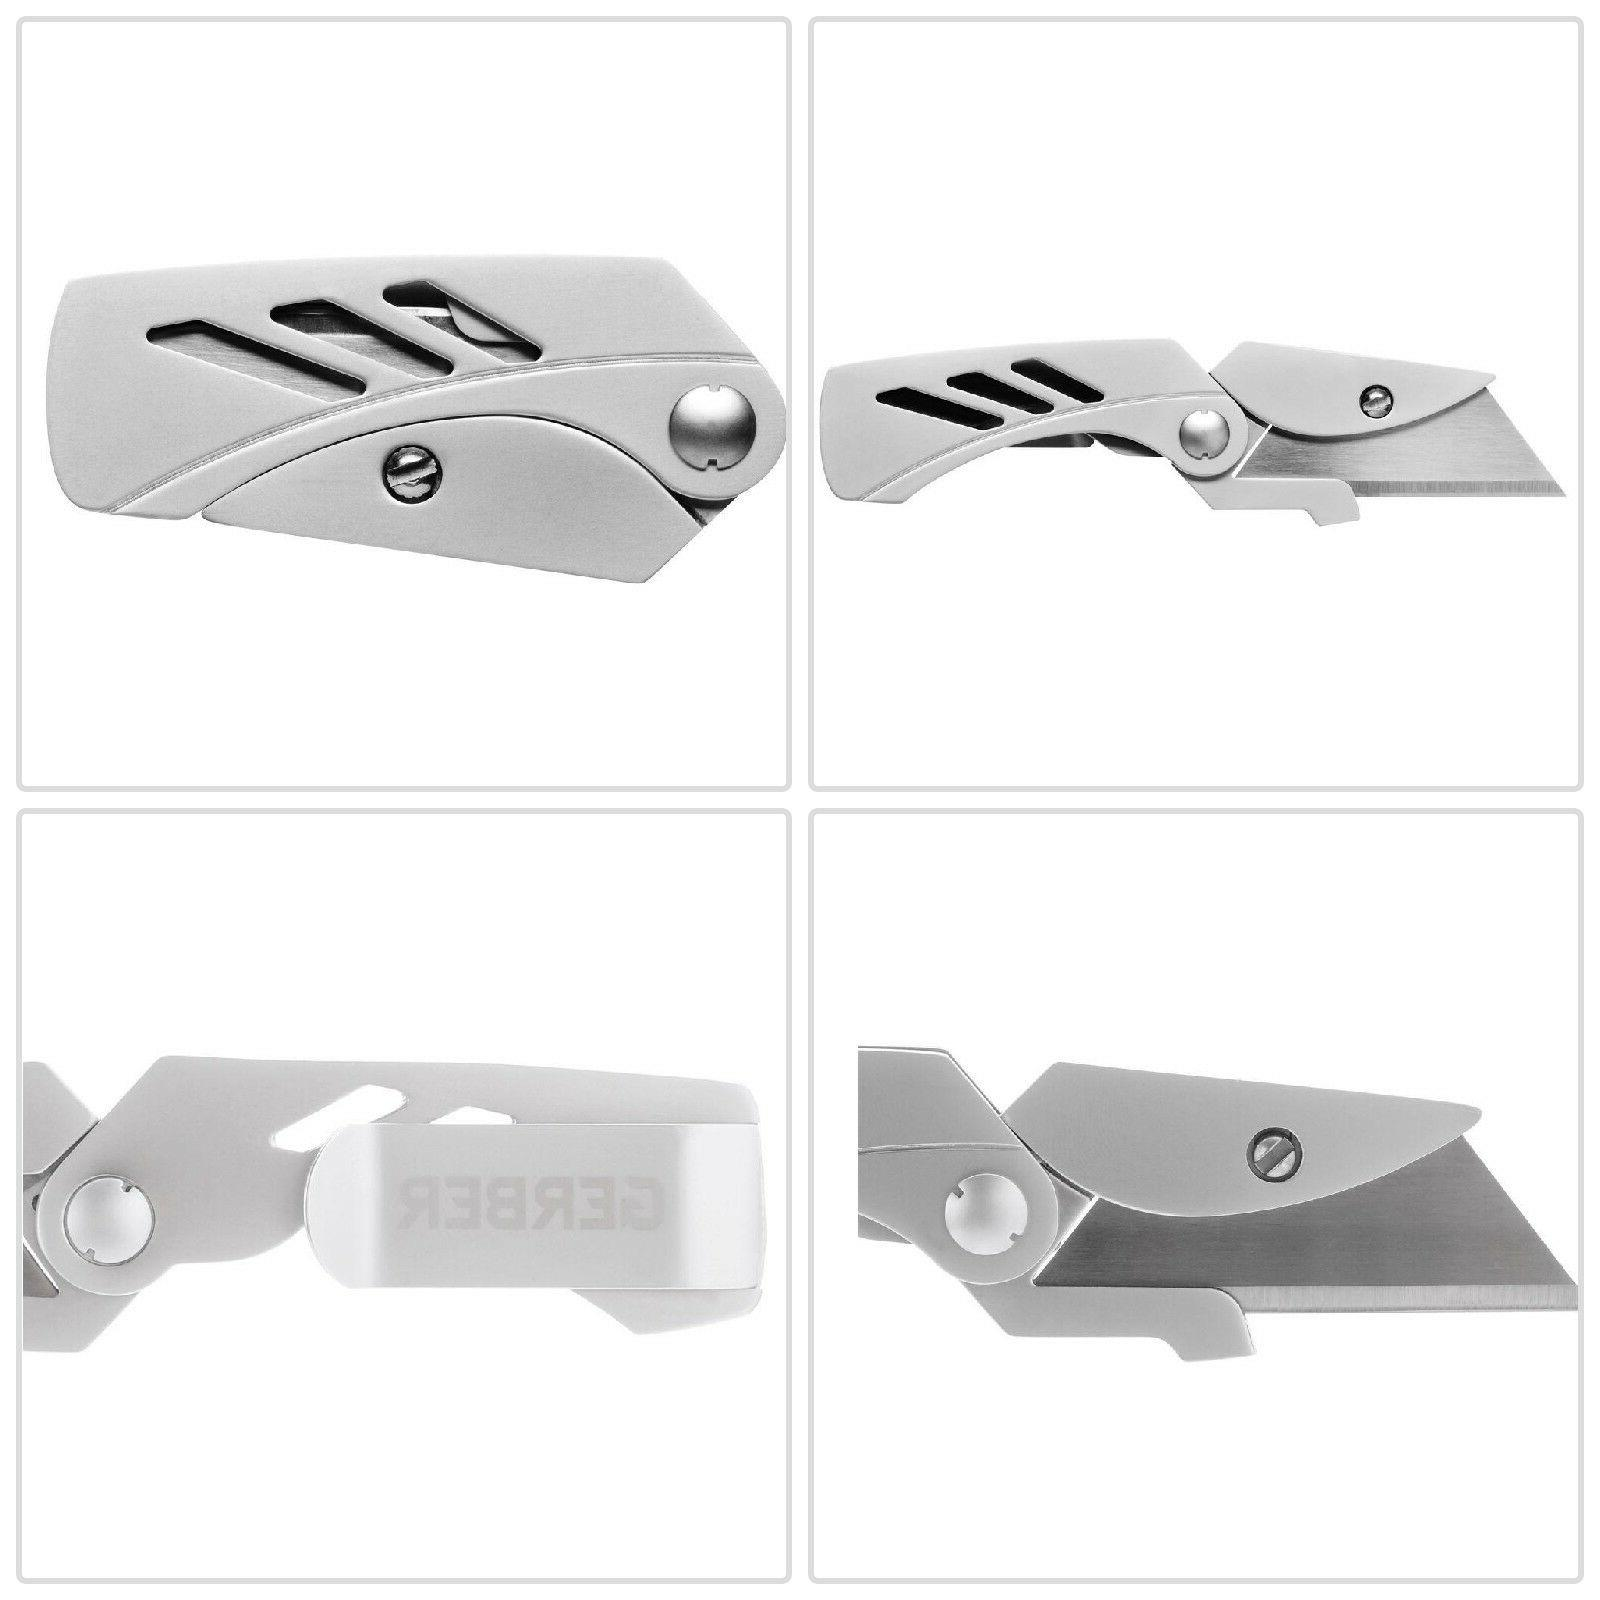 Small Lite Utility Folding Pocket Knife Stainless Steel Mone